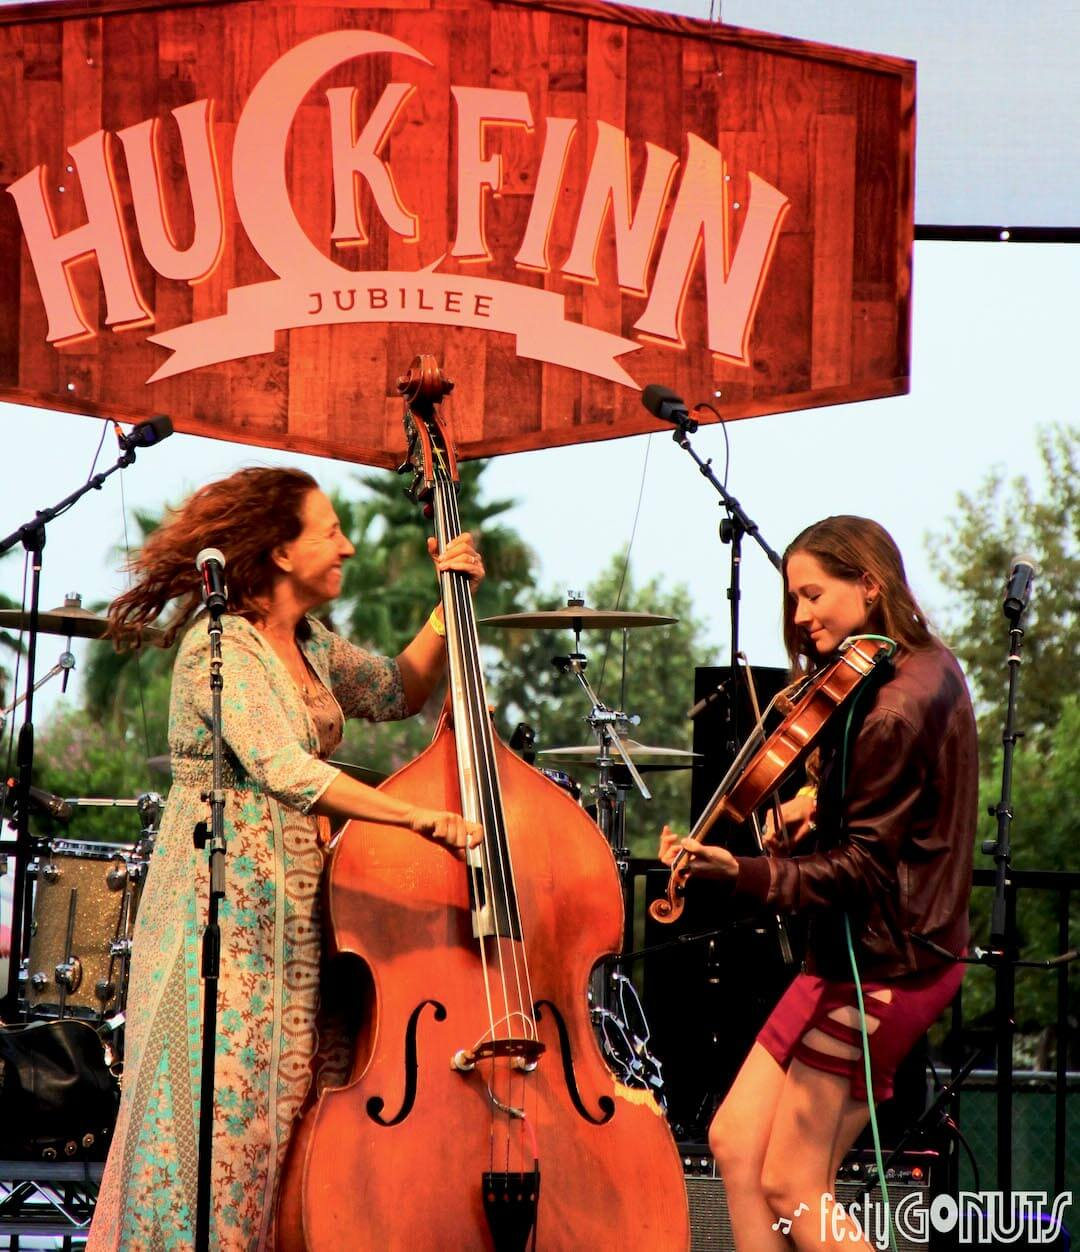 Huck Finn Jubilee 2019 | The Sweet Lillies